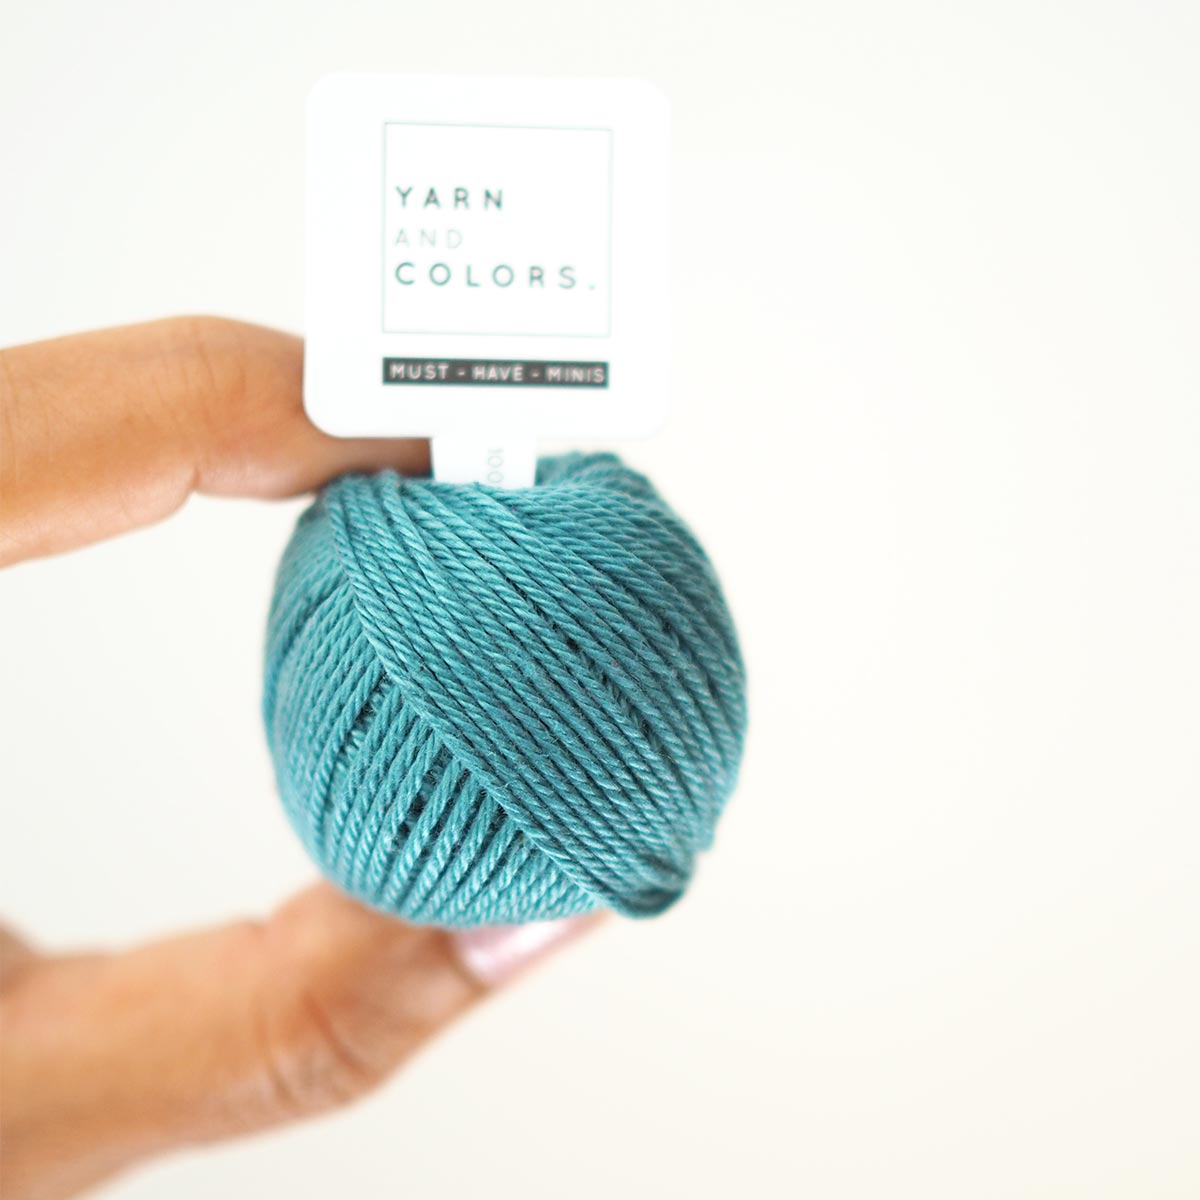 cotton-must-have-mini-yarn-and-colors-laboutiquedemelimelo